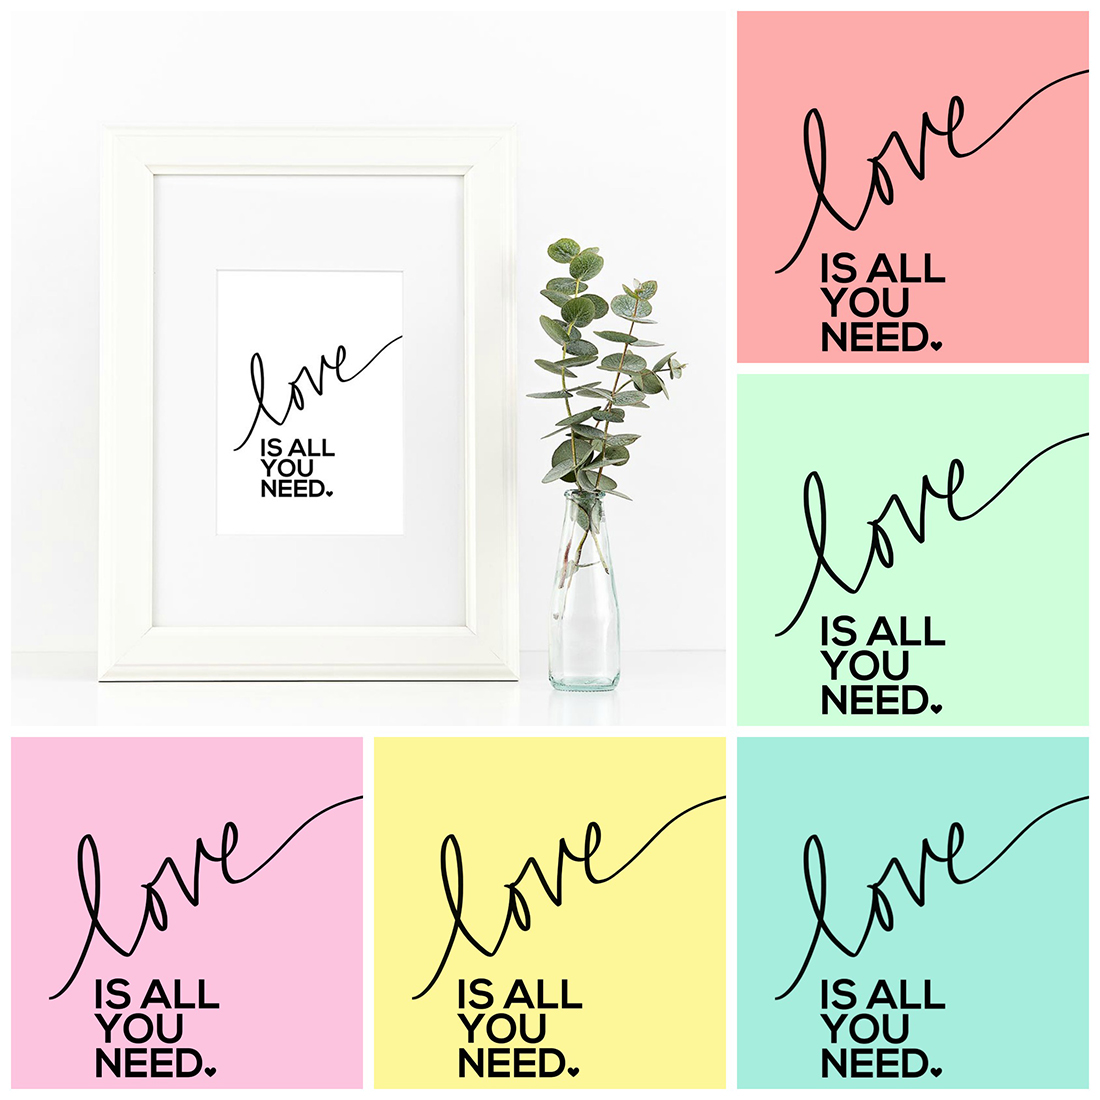 Beatles Printables • All You Need Is Love • Little Gold Pixel • shoplittlegoldpixel.com